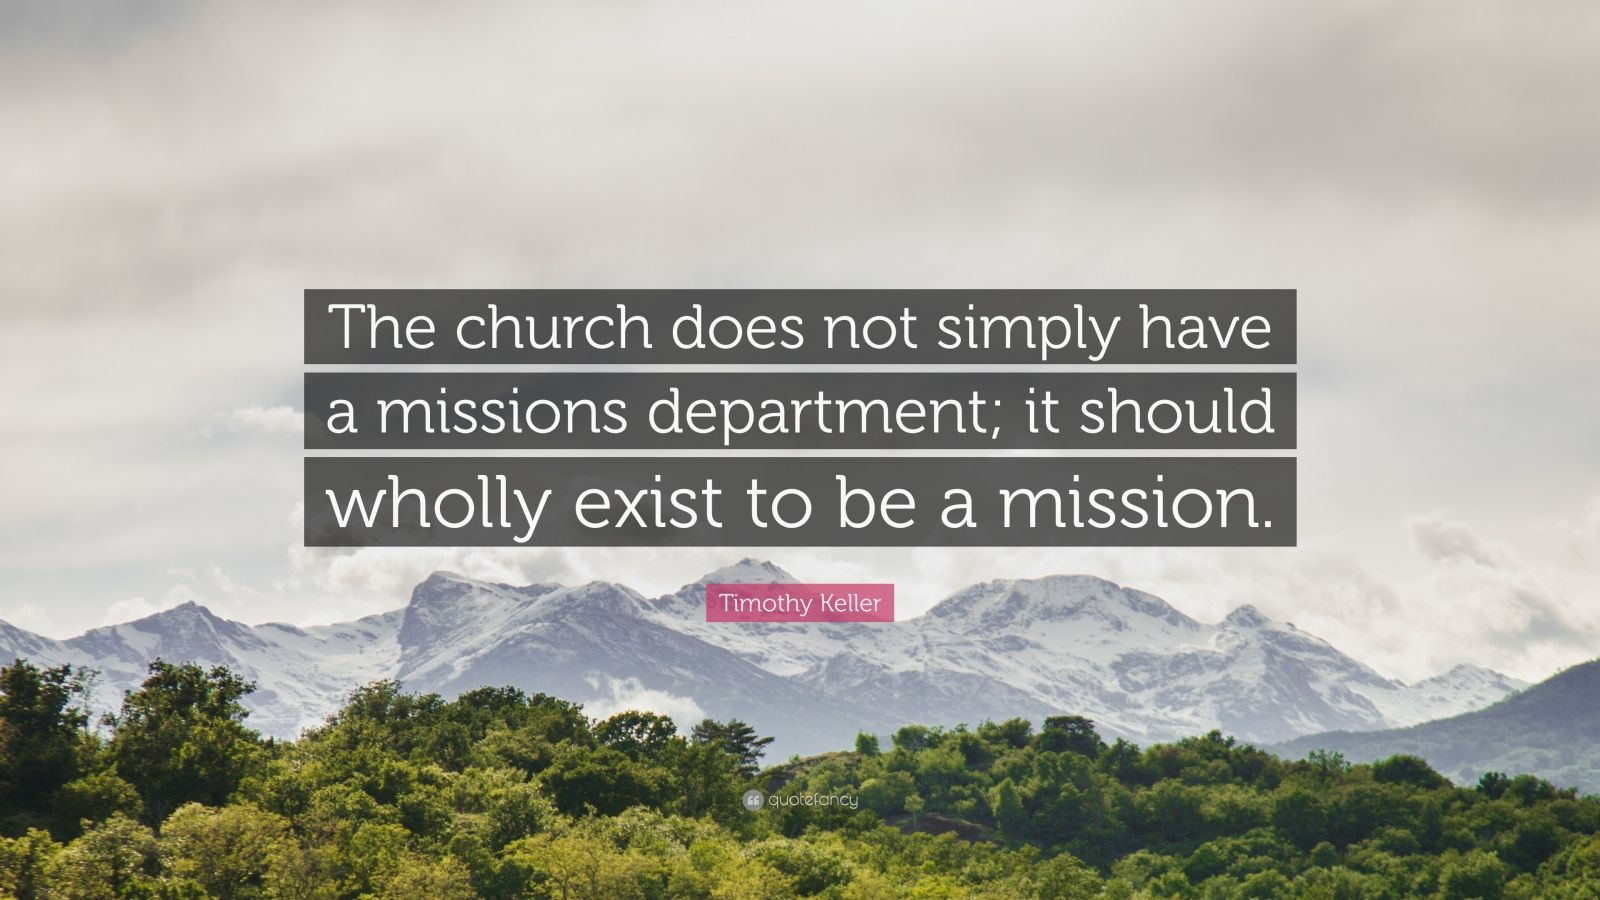 """Timothy Keller Quote: """"The church does not simply have a missions department; it should wholly exist to be a mission."""""""